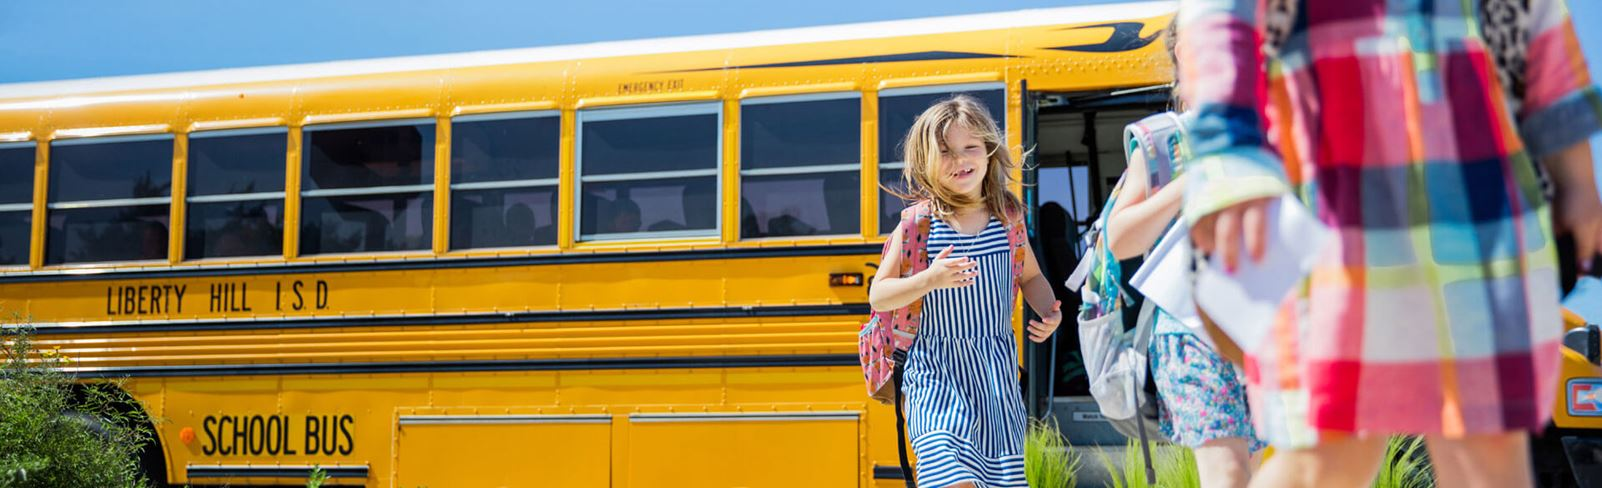 Rancho Sienna girl in front of school bus